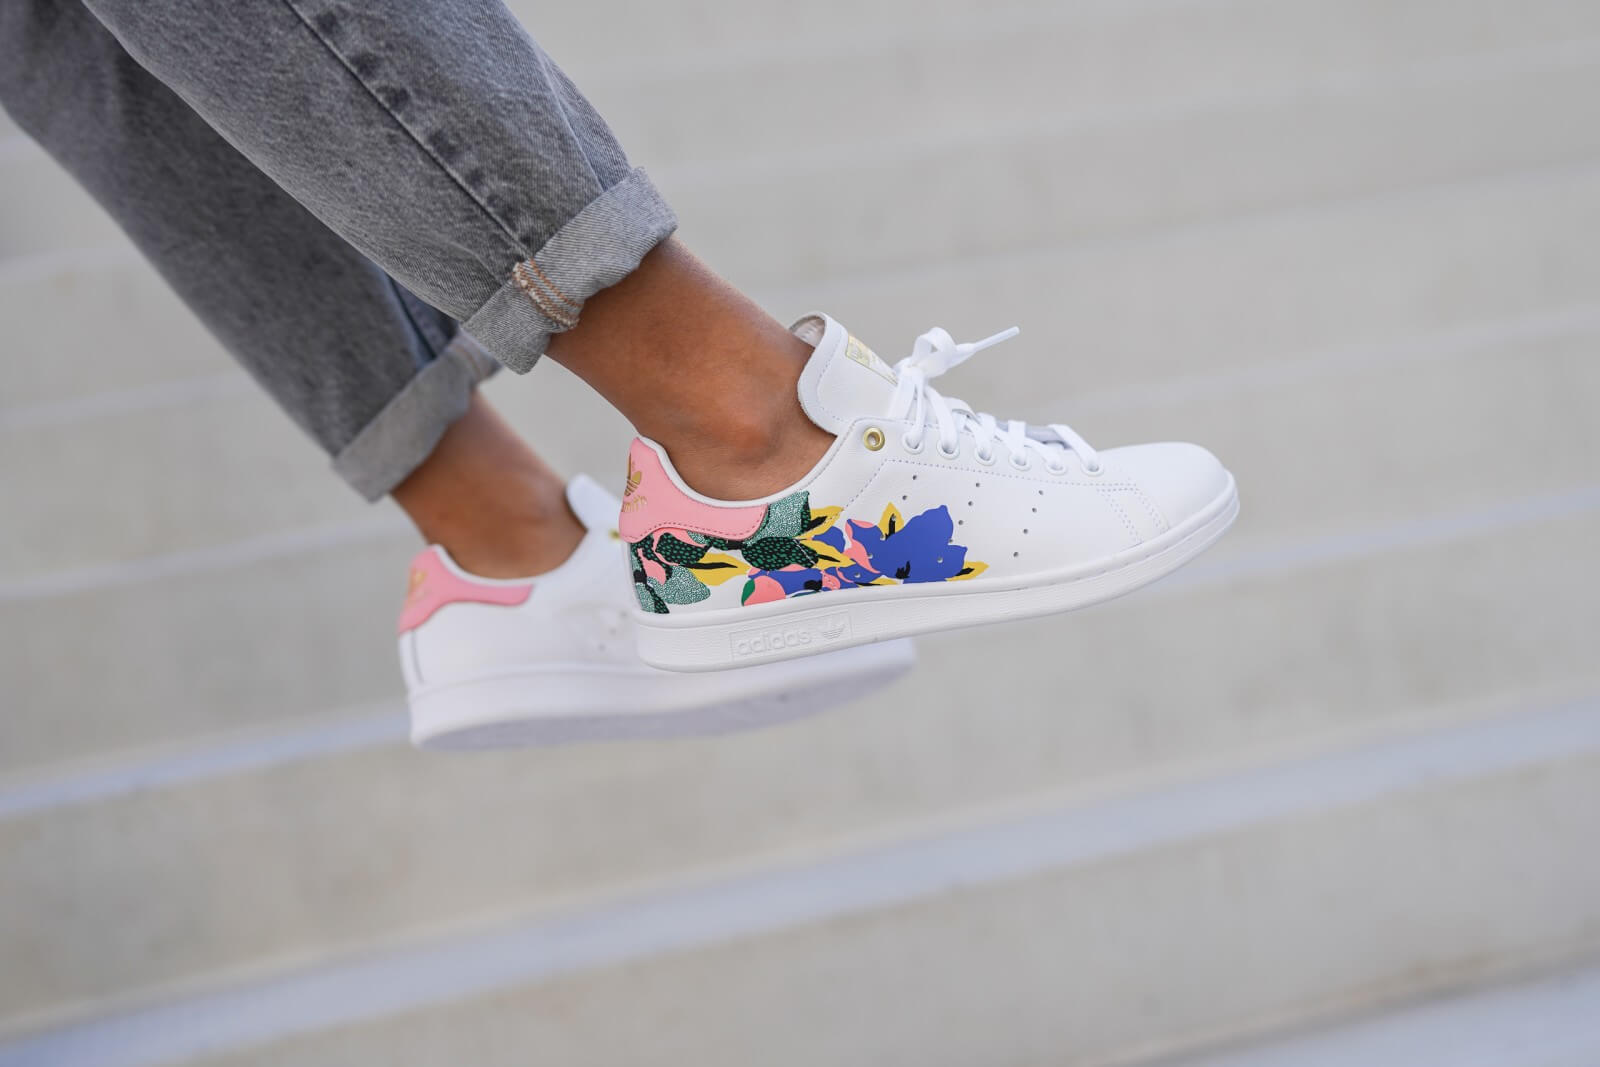 Adidas Women's Stan Smith Cloud White/Glow Pink-Gold Metallic